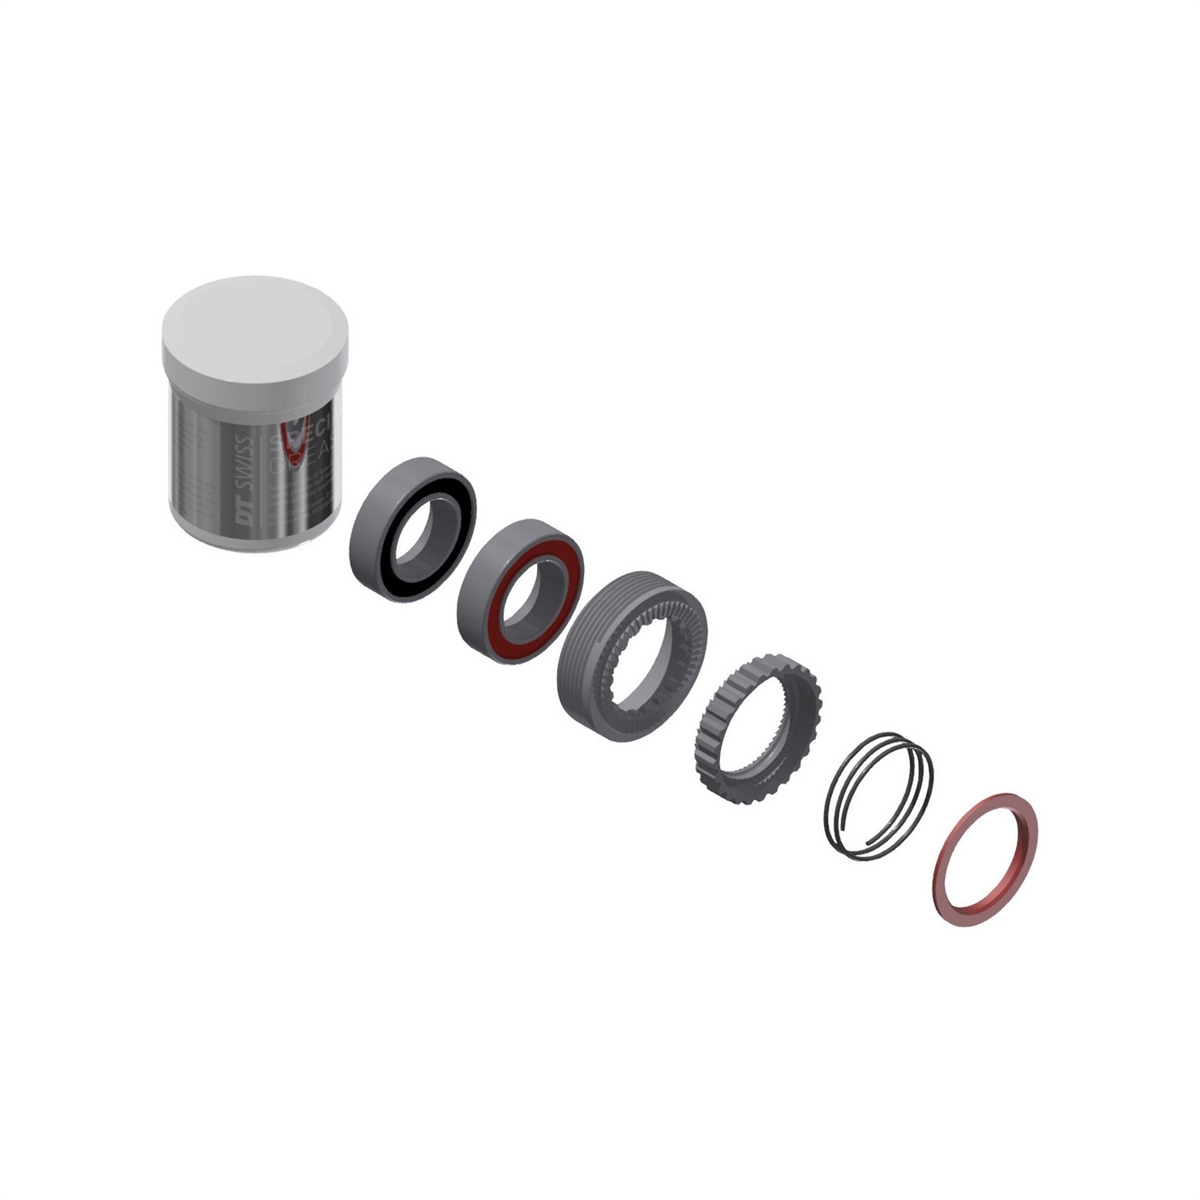 Service Kit Ratchet 54T 240 EXP With Bearings